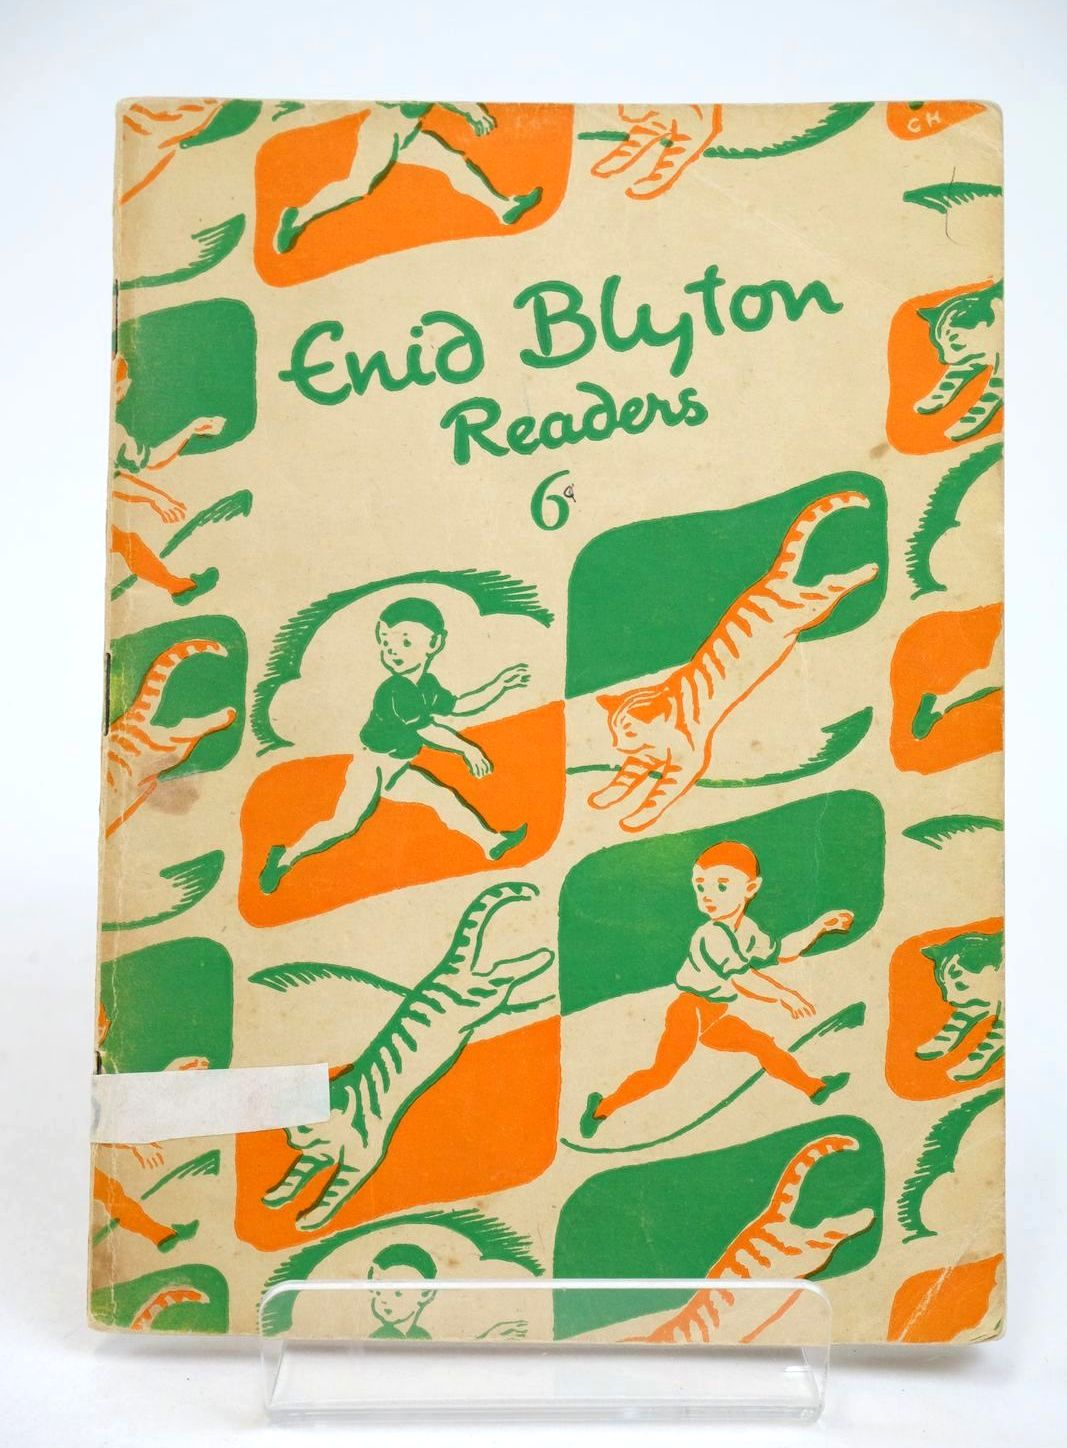 Photo of ENID BLYTON READERS 6 written by Blyton, Enid illustrated by Soper, Eileen published by Macmillan & Co. Ltd. (STOCK CODE: 1318992)  for sale by Stella & Rose's Books